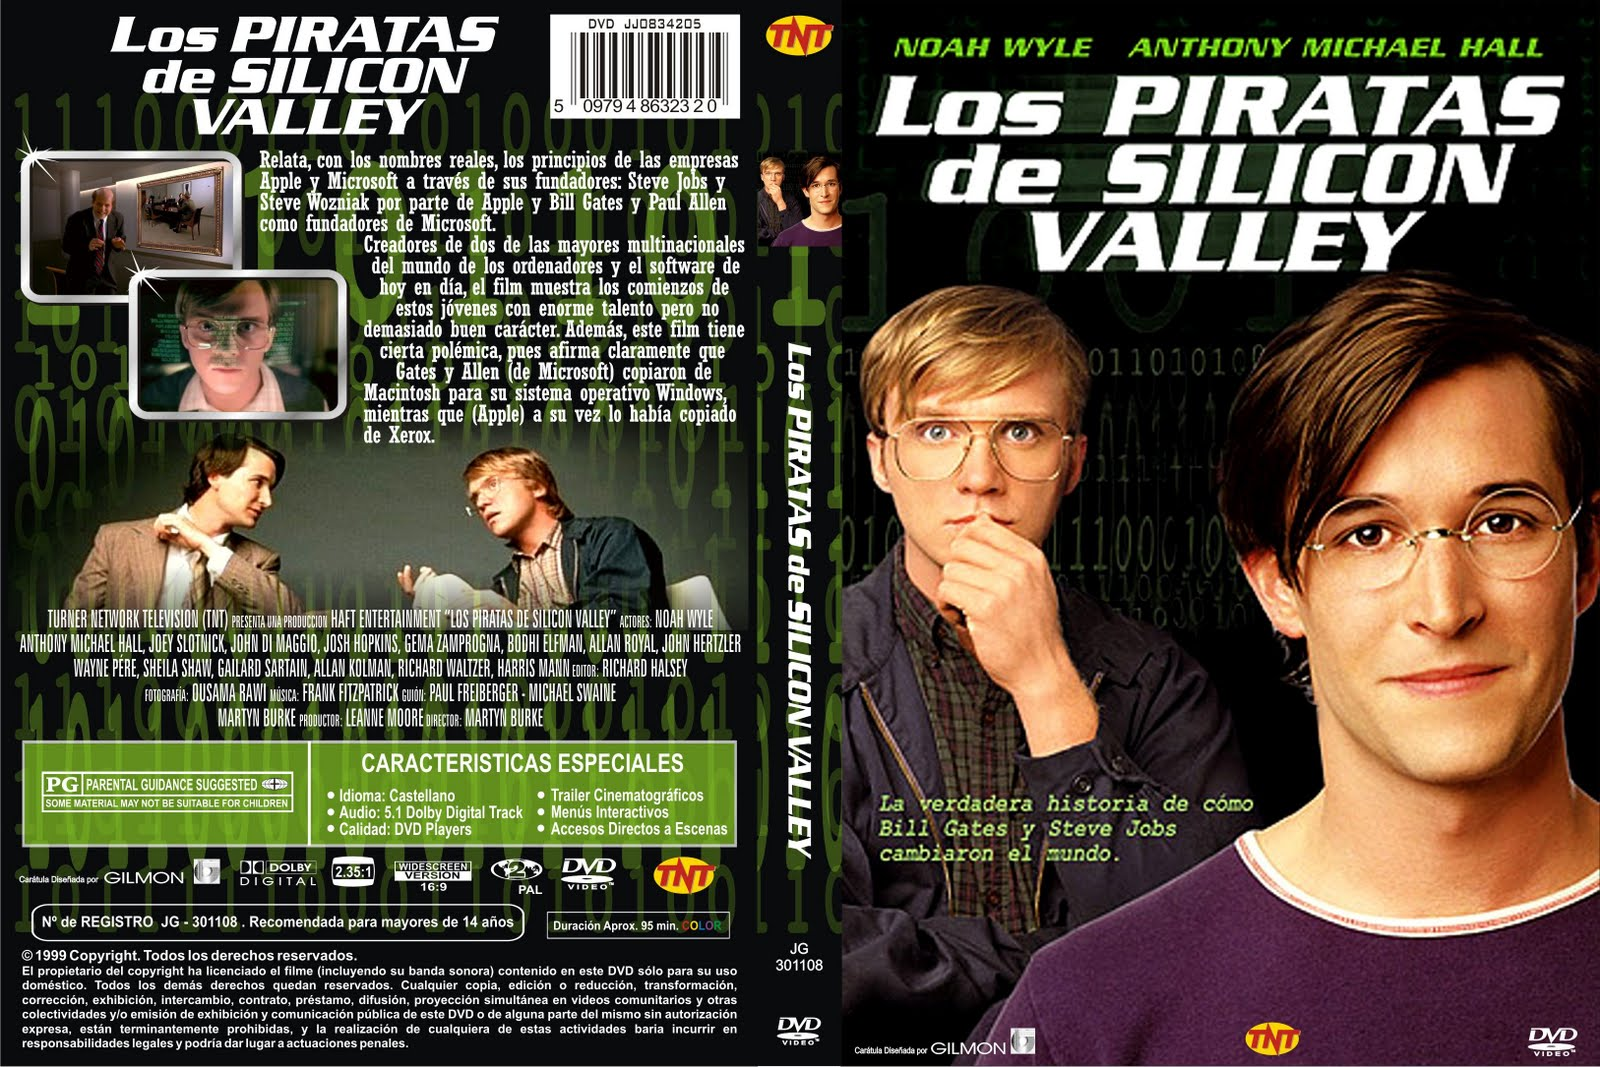 summary of the pirates of silicon valley Drama director: martyn burke starring: noah wyle, joey slotnick, jg hertzler and others this film is the semi-humorous documentary about the men who made the world of technology what it is today, their struggles during college, the founding of their companies.